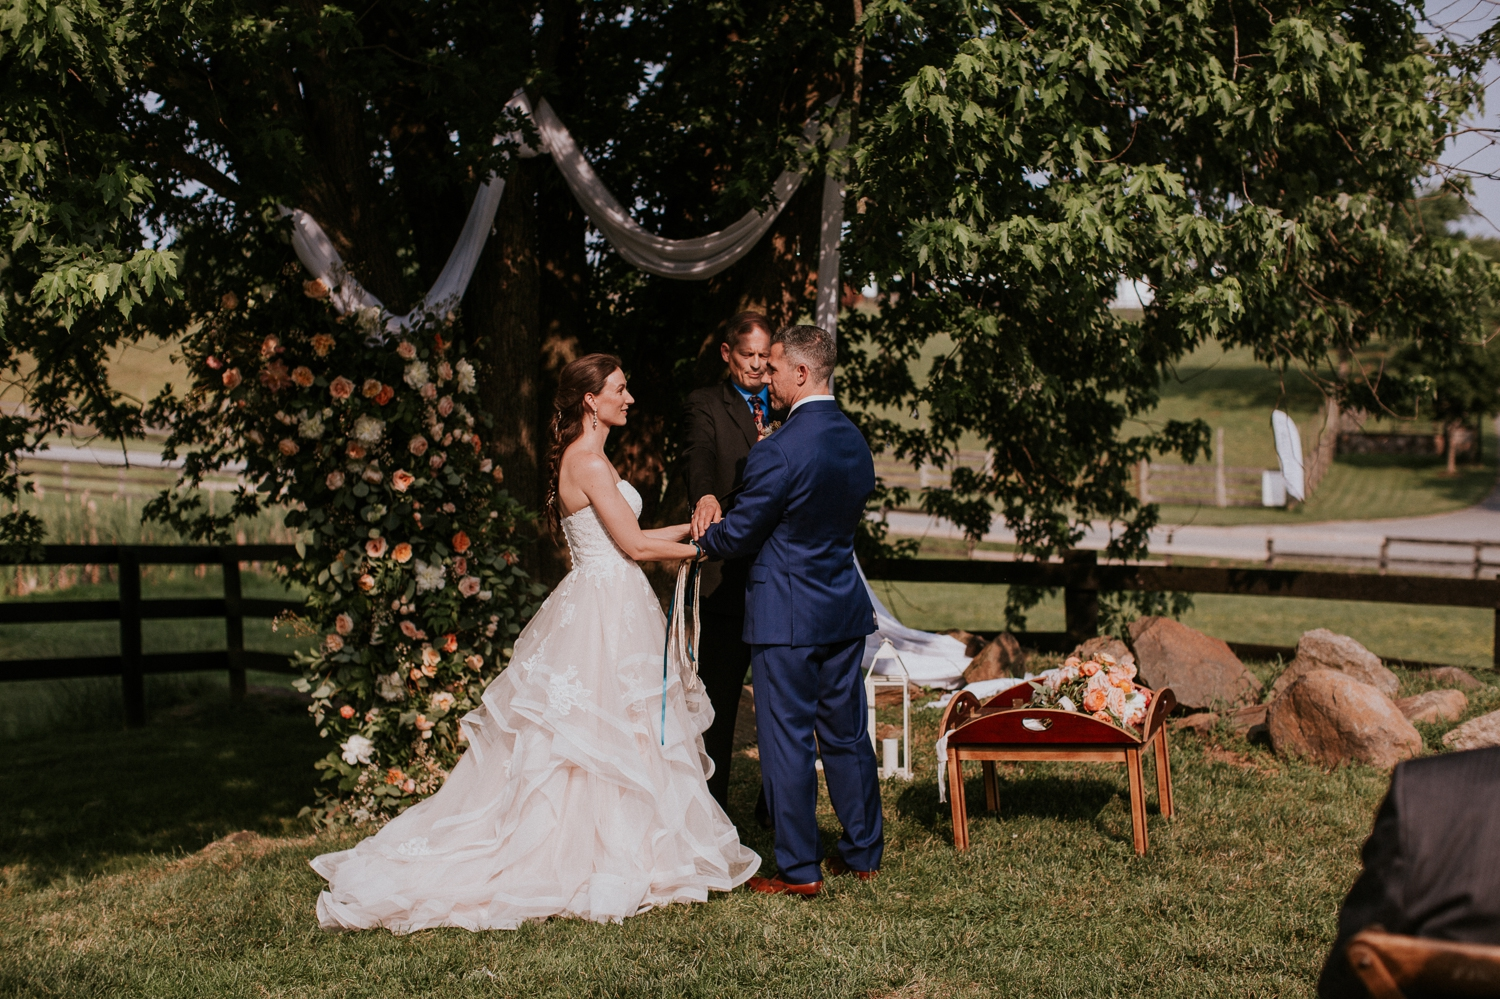 purceville-virginia-tranquility-farms-wedding-photography-planning-coordination 50.jpg